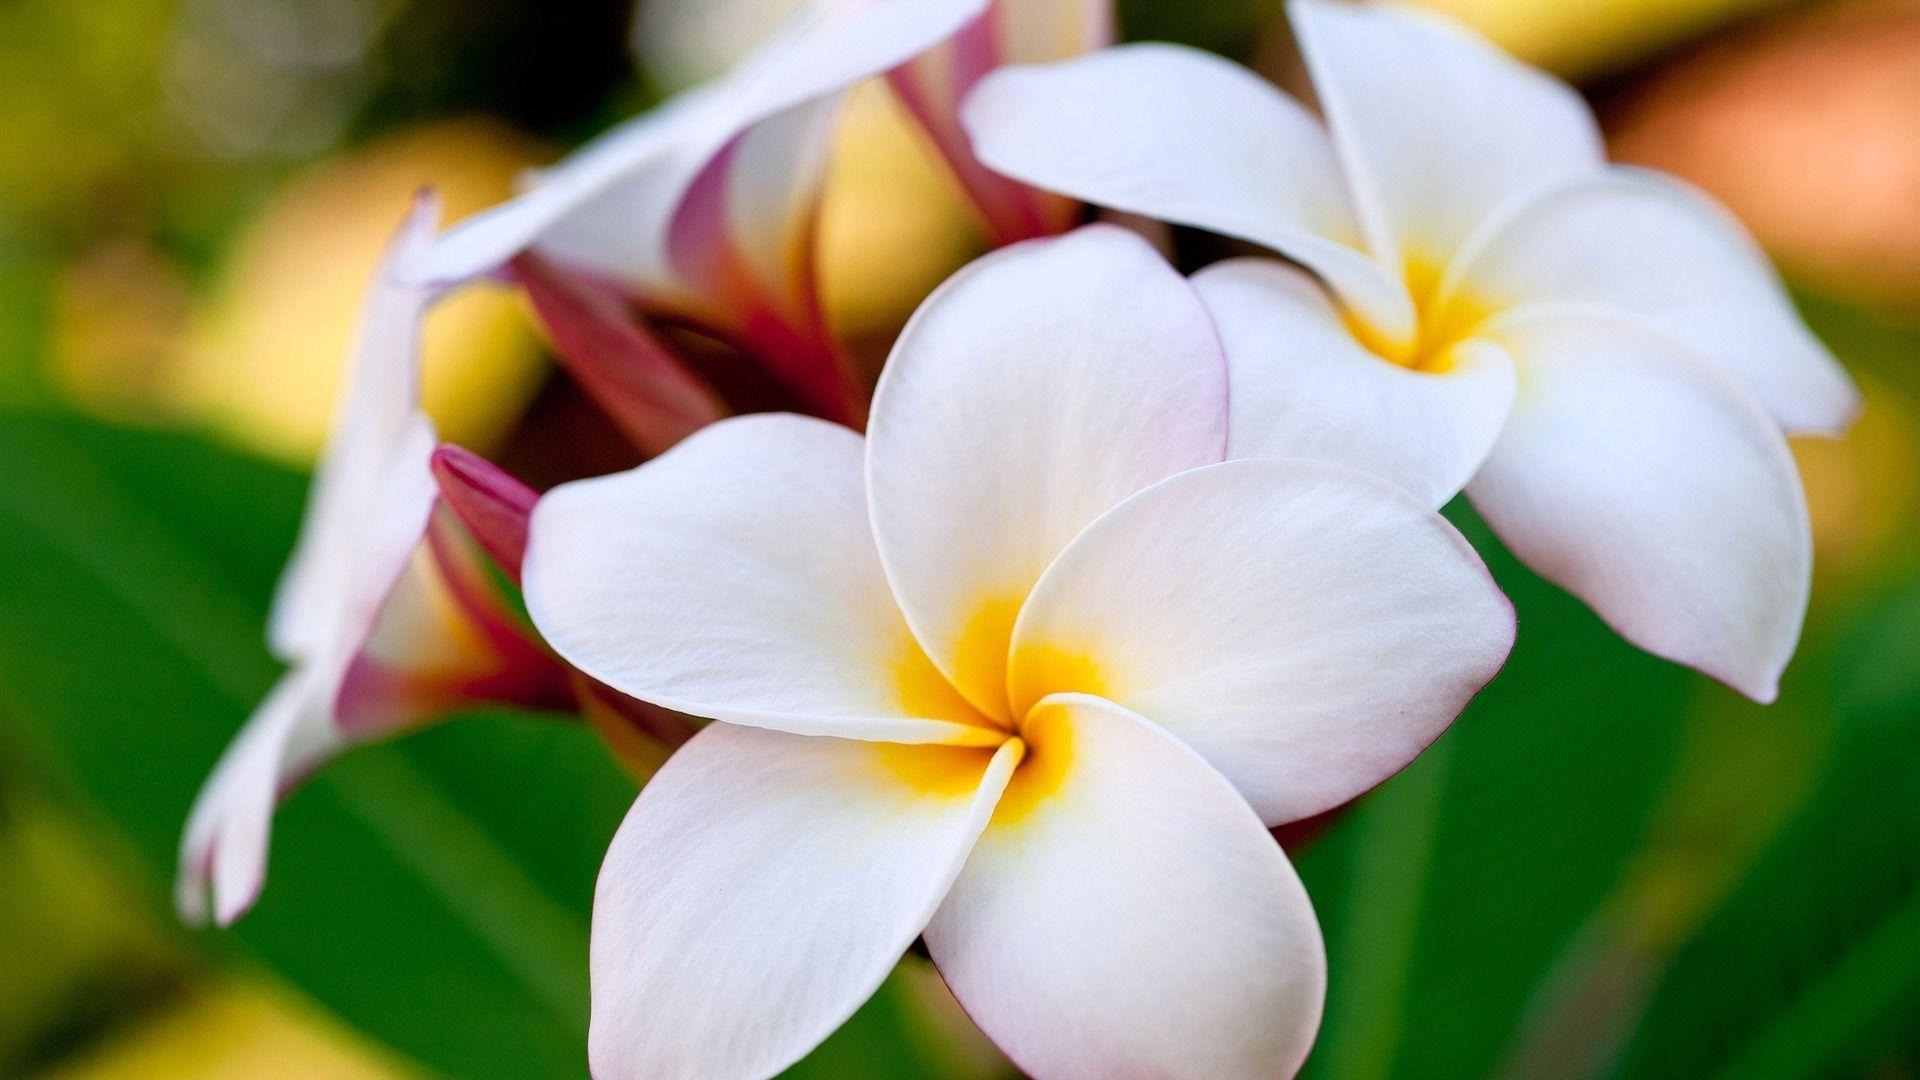 Hawaiian flower wallpapers wallpaper cave hawaiian flowers wallpaper 506 wallpaper cool wallpaper izmirmasajfo